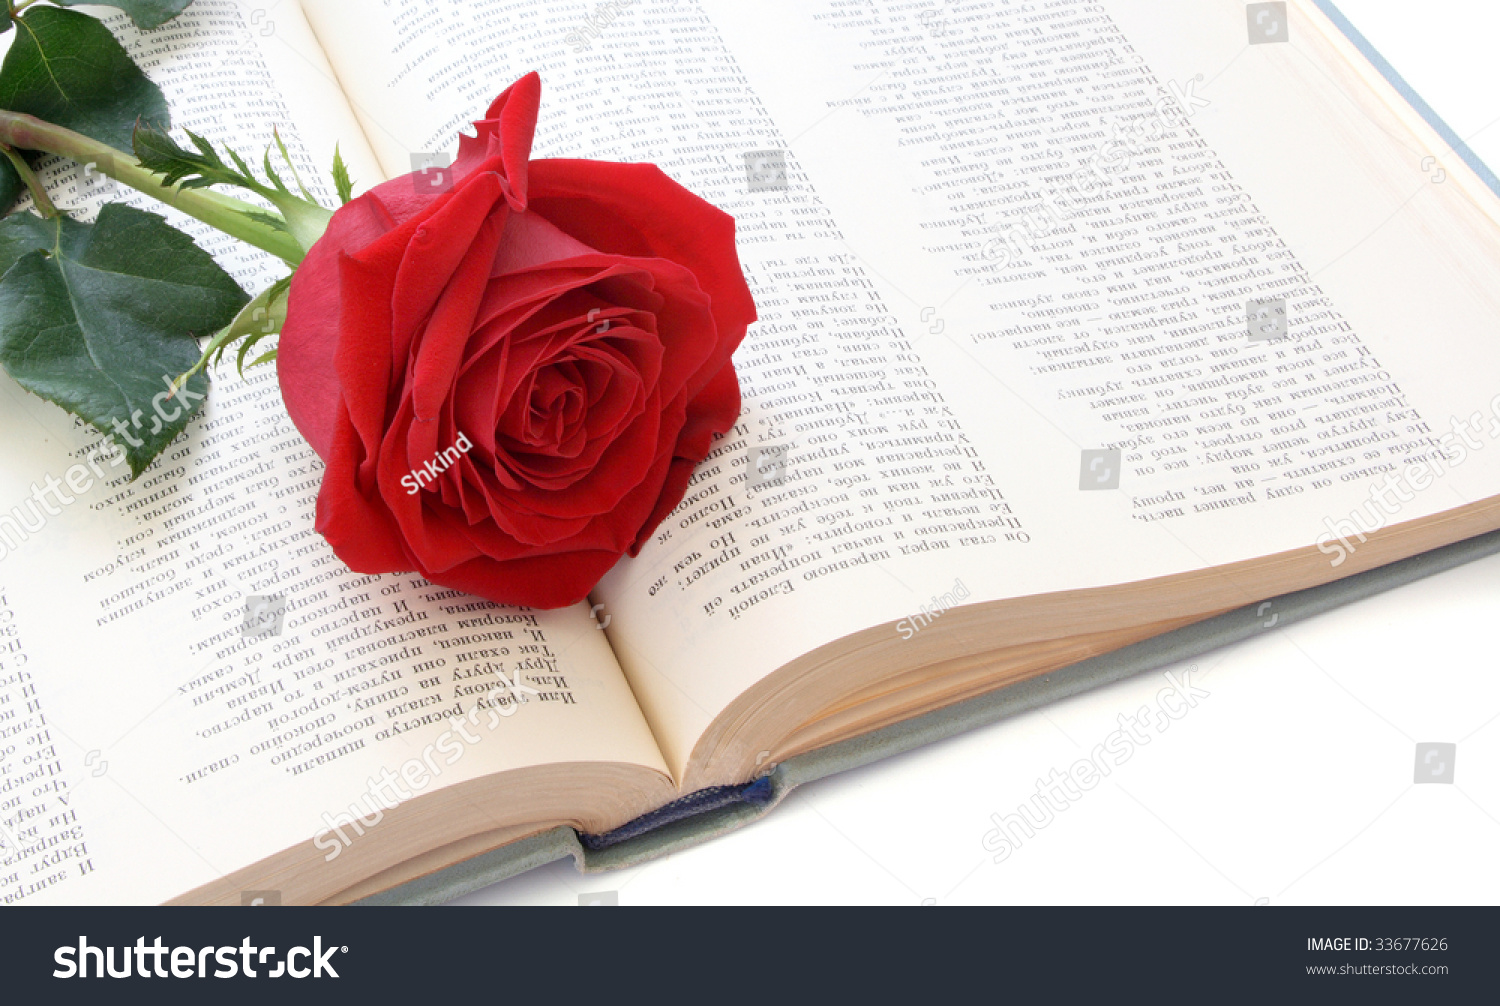 Rose Red Color On Pages Book Stock Photo (Royalty Free) 33677626 ...